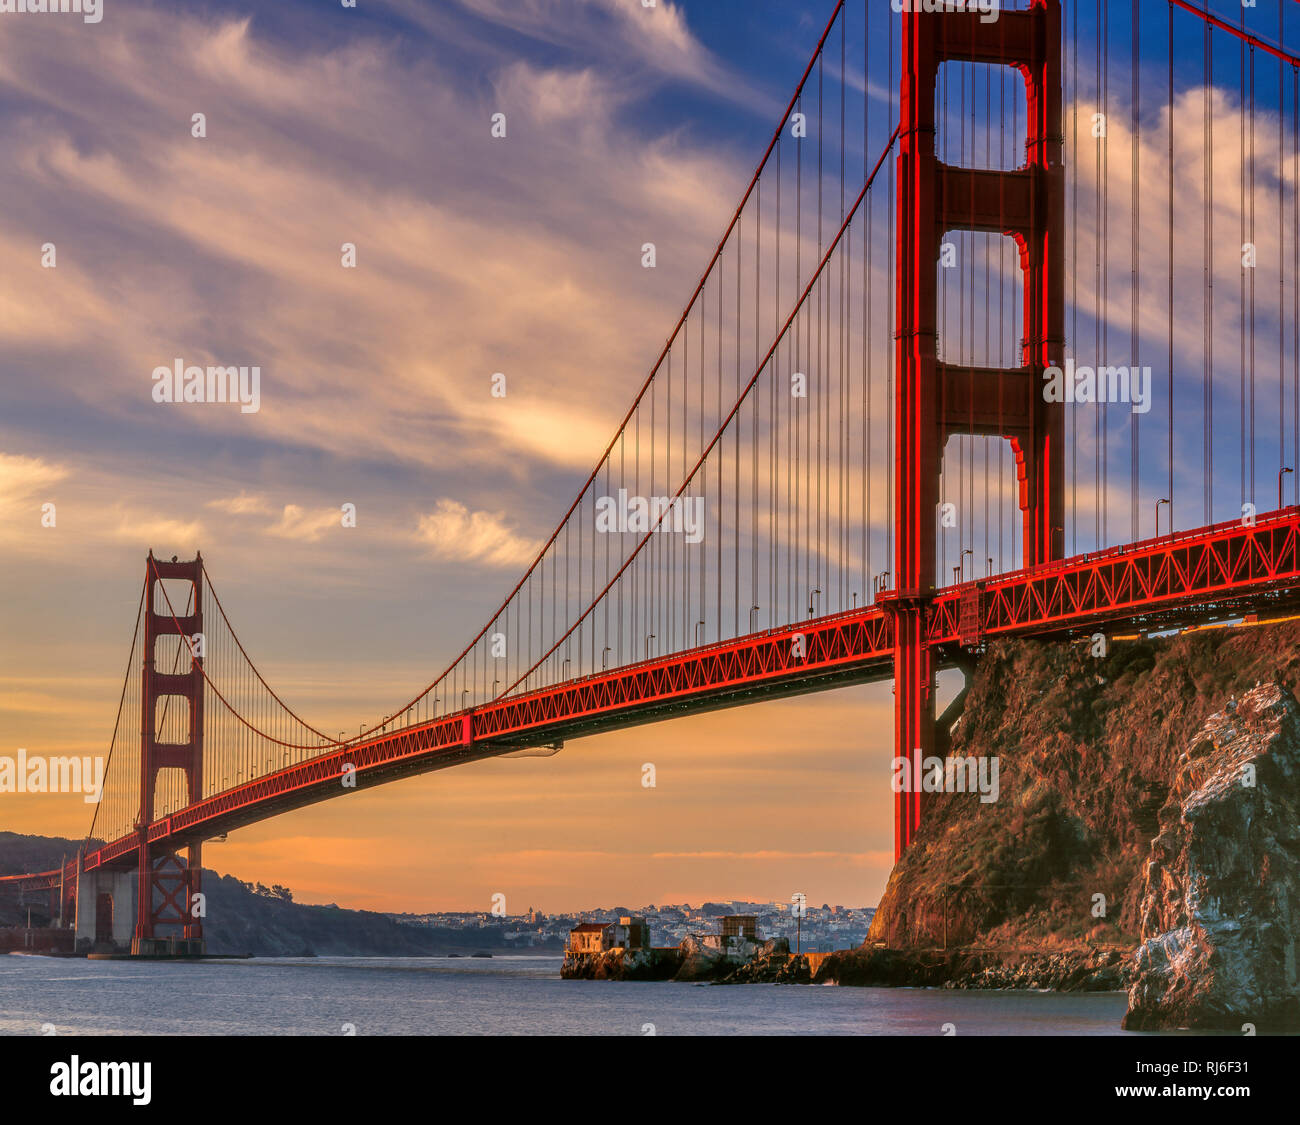 Sunrise, Golden Gate Bridge, San Francisco, California - Stock Image